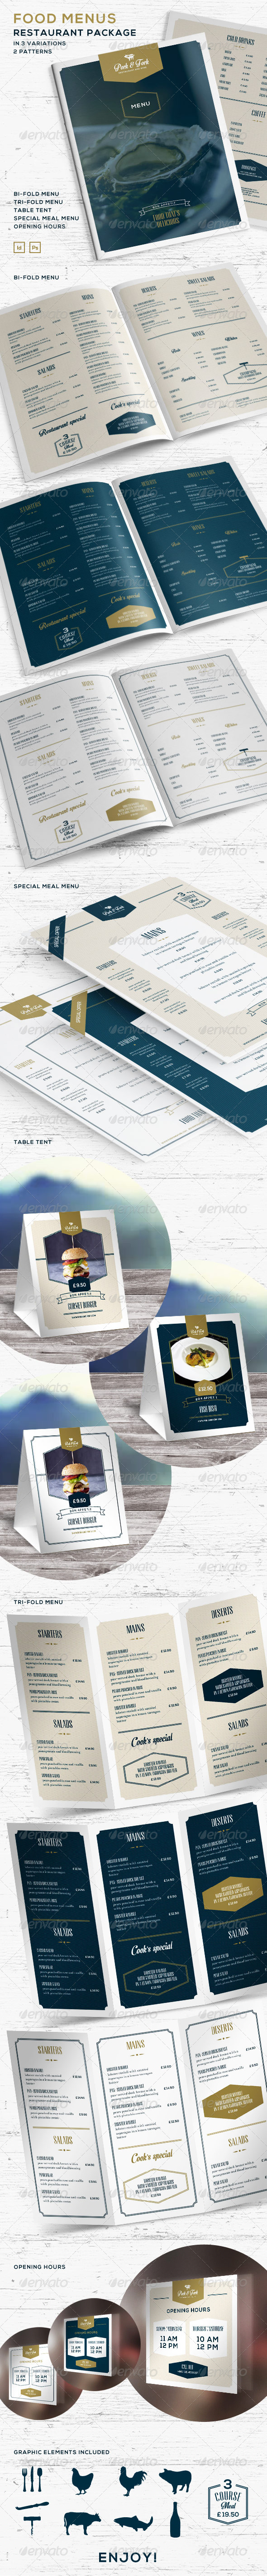 Food Menus - Restaurant Package - Food Menus Print Templates